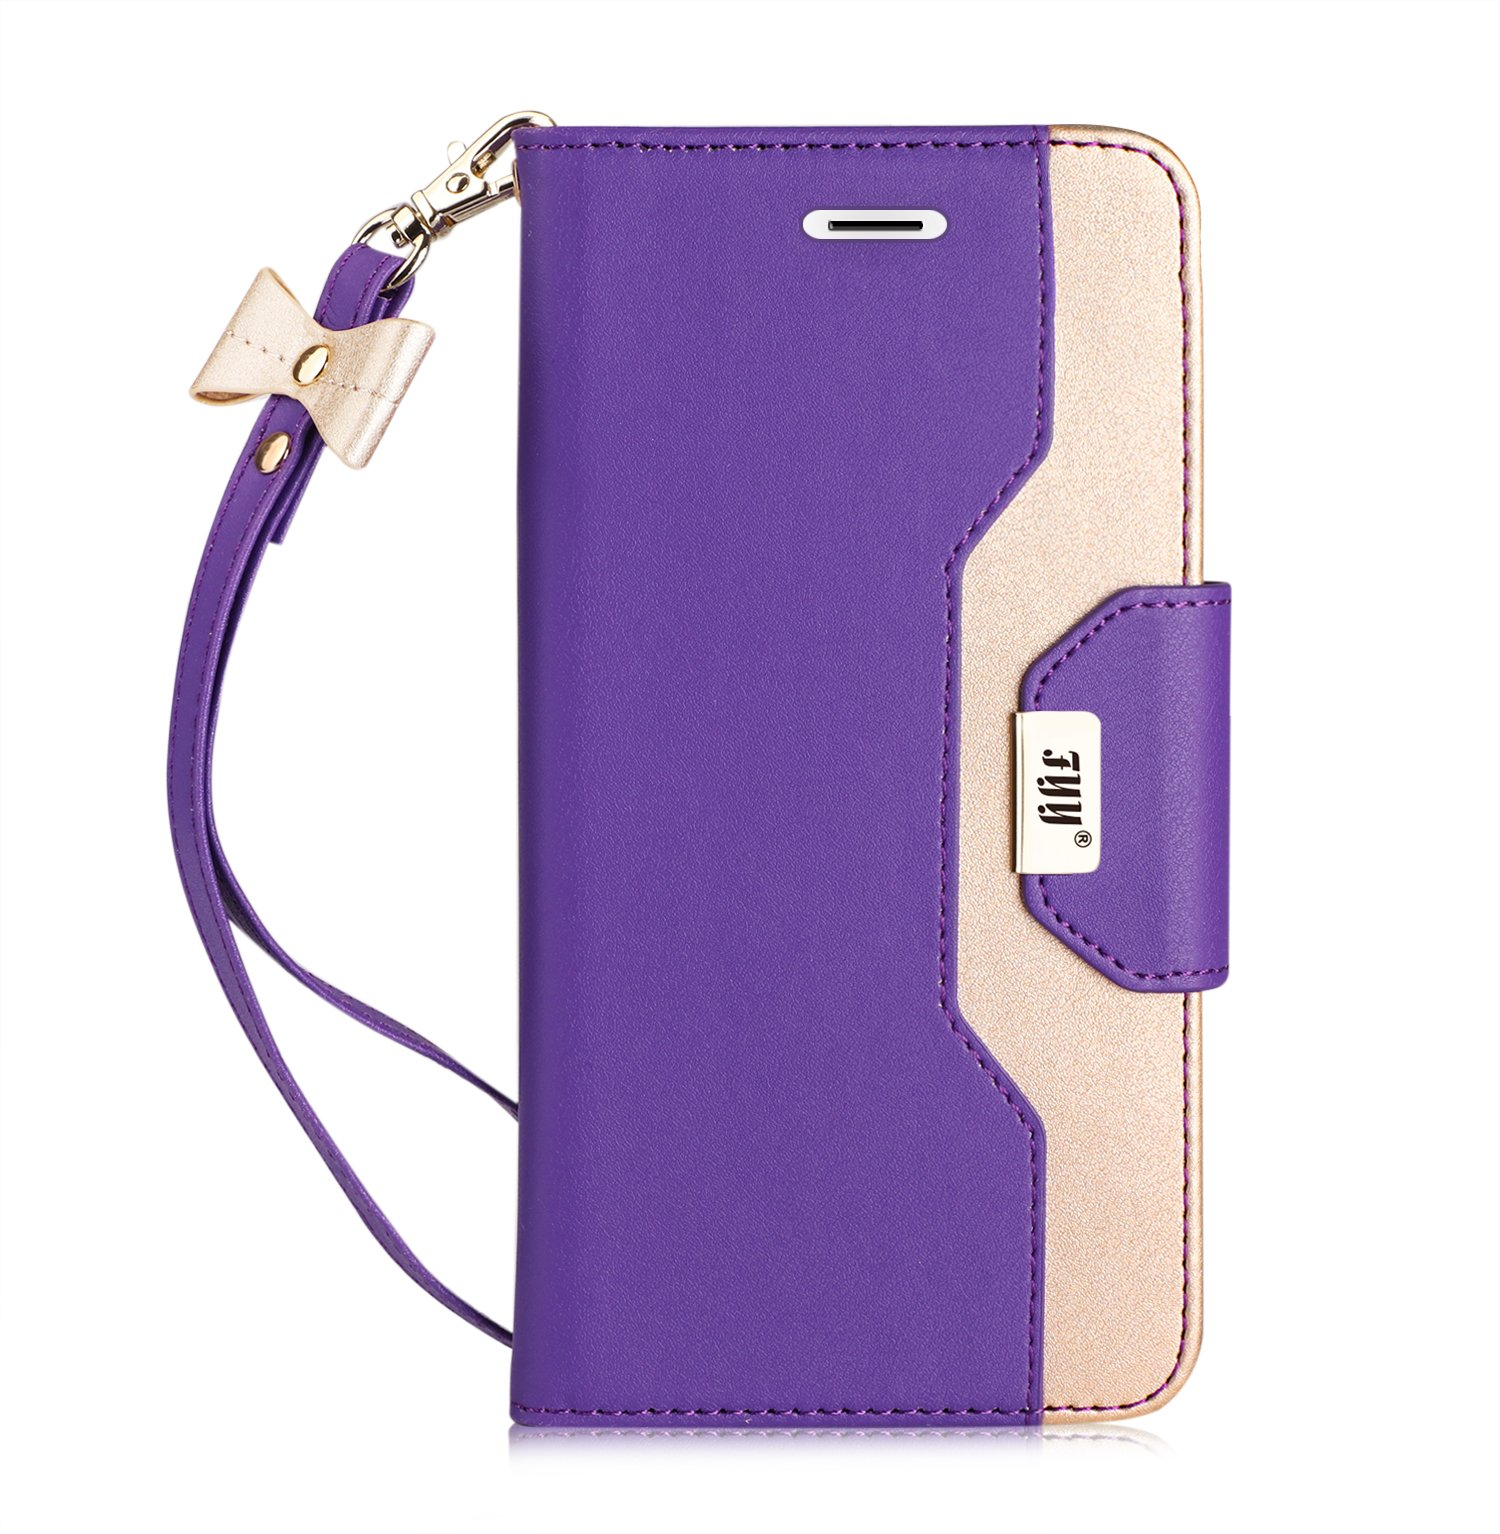 FYY Case for Galaxy S9 Plus, [Inside Makeup Mirror Leather Wallet Case] with [Prevent Card Information Leaking Technique] and [Kickstand Feature] for Samsung Galaxy S9 Plus Purple+Gold